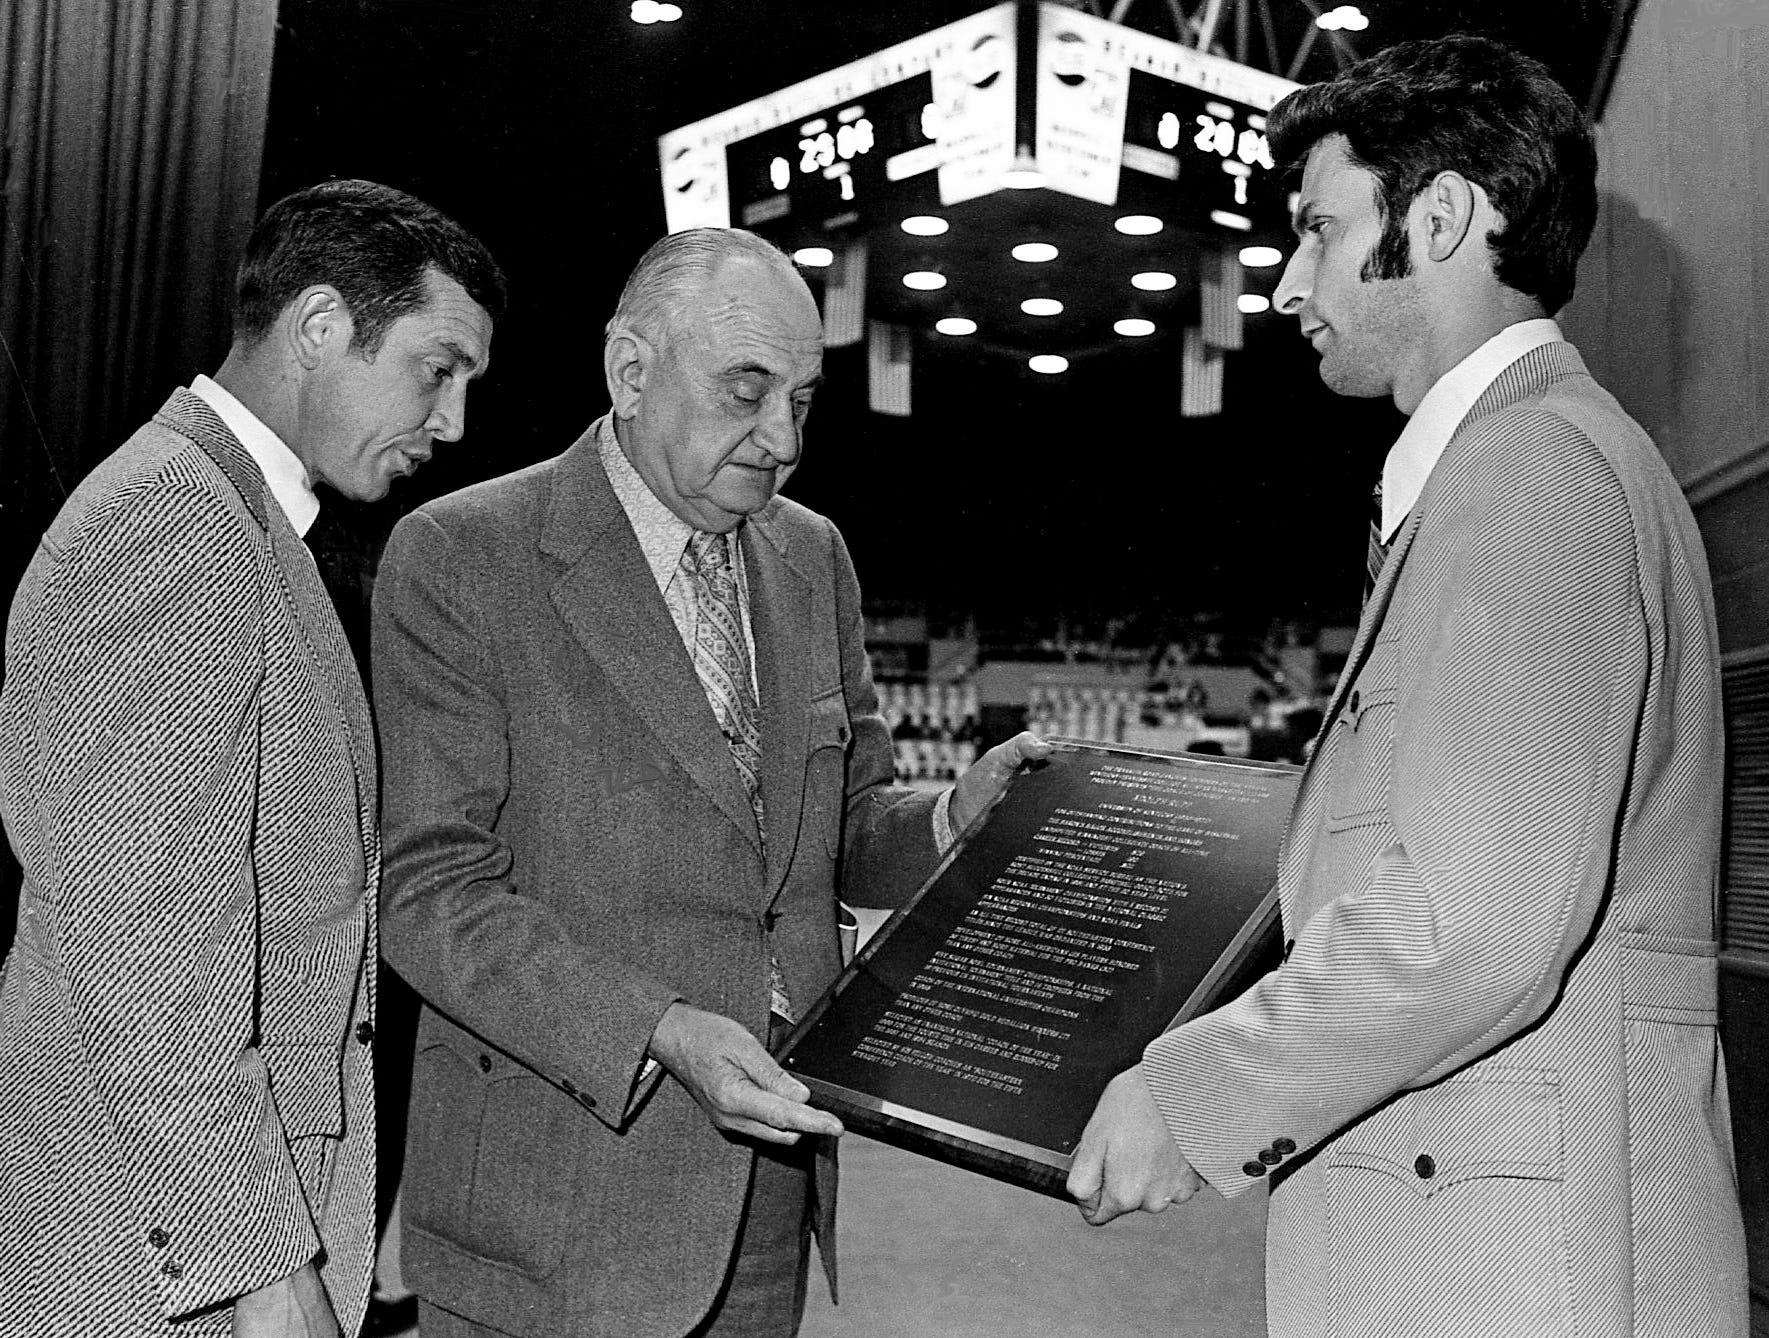 Coach Adolph Rupp, center, examines the plaque presented him before the start of the Kentucky-Tennessee All-Star game April 1, 1972. Looking on at the enumeration of the nation's winning coach are Vanderbilt coach Roy Skinner, left, and Dave Shelton of the sponsoring Franklin Road Jaycees, who presented the award.